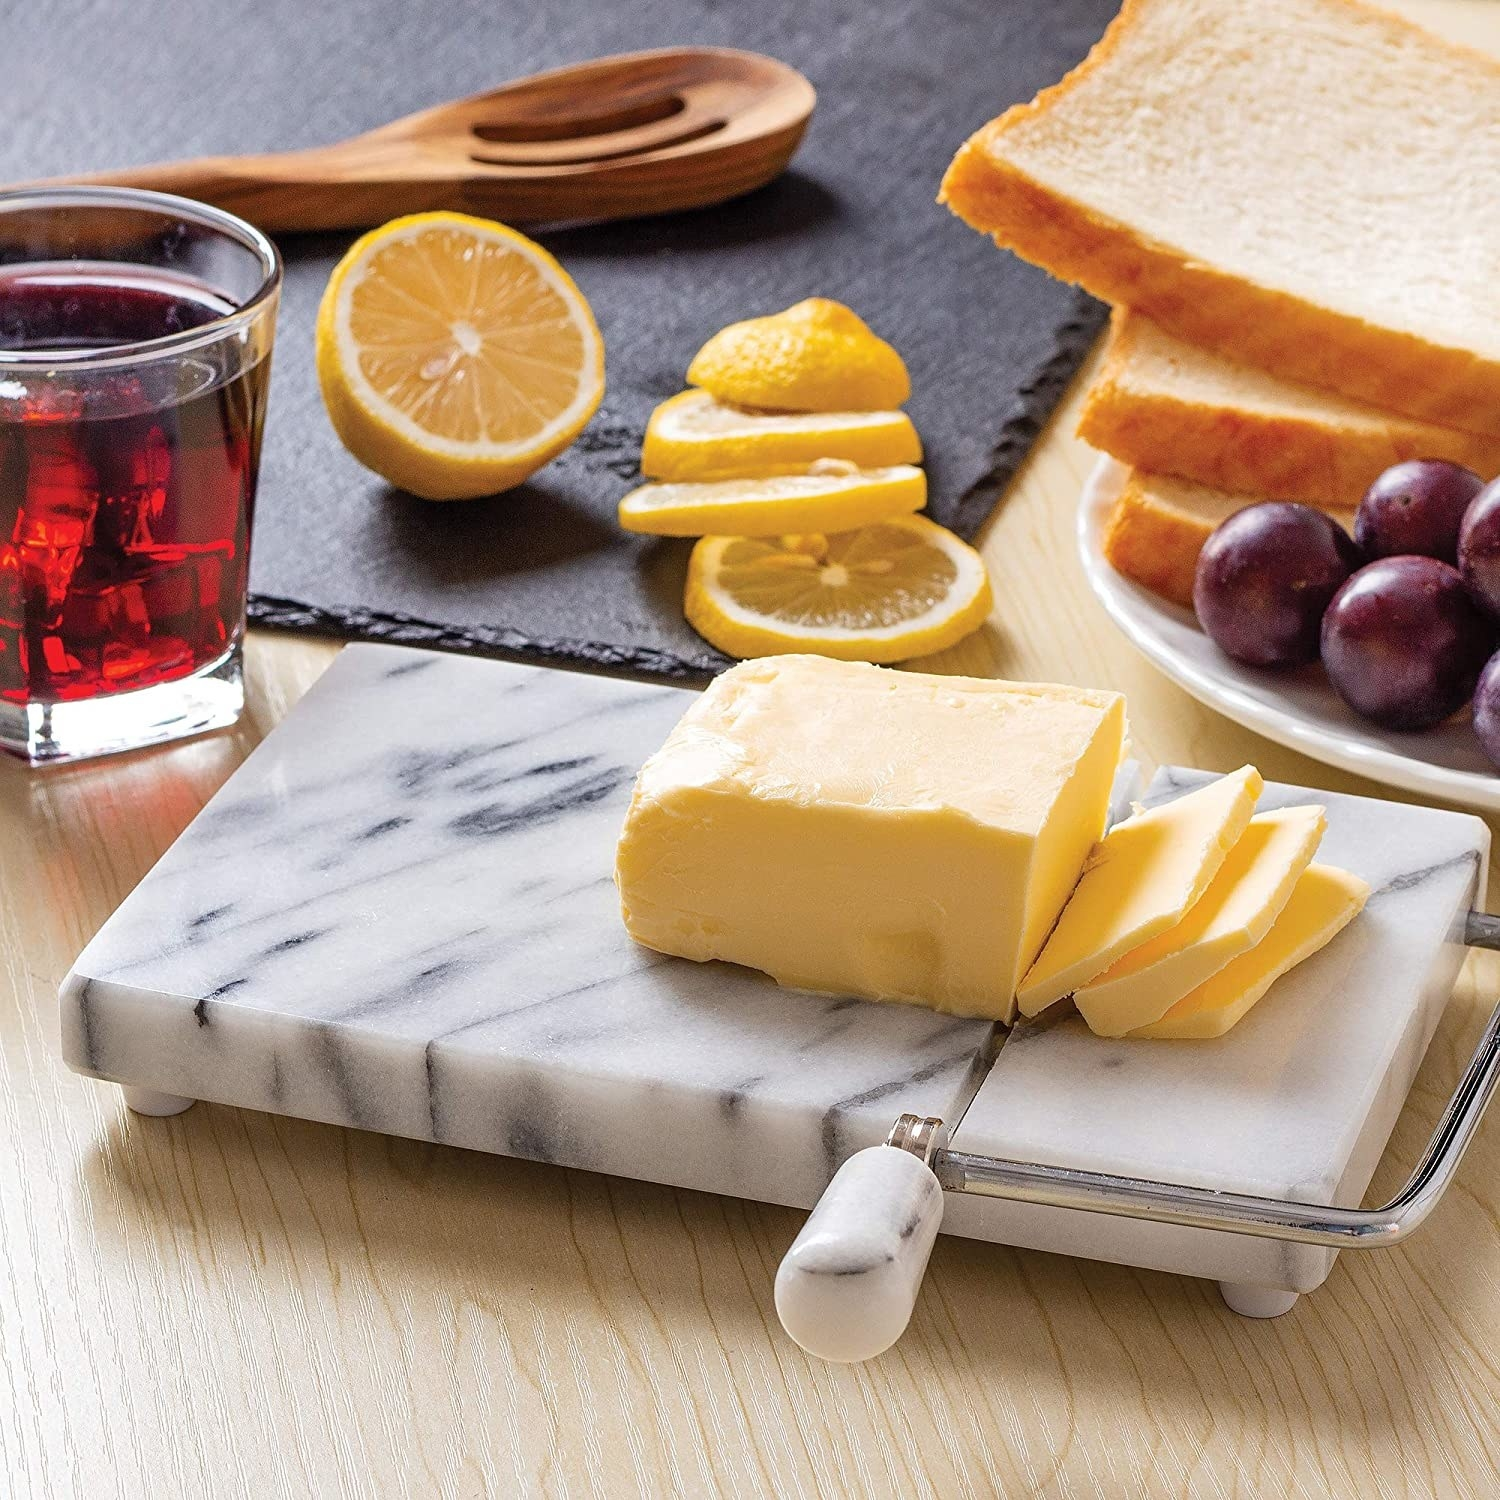 The marble cheese slicer with a block of cheese on top